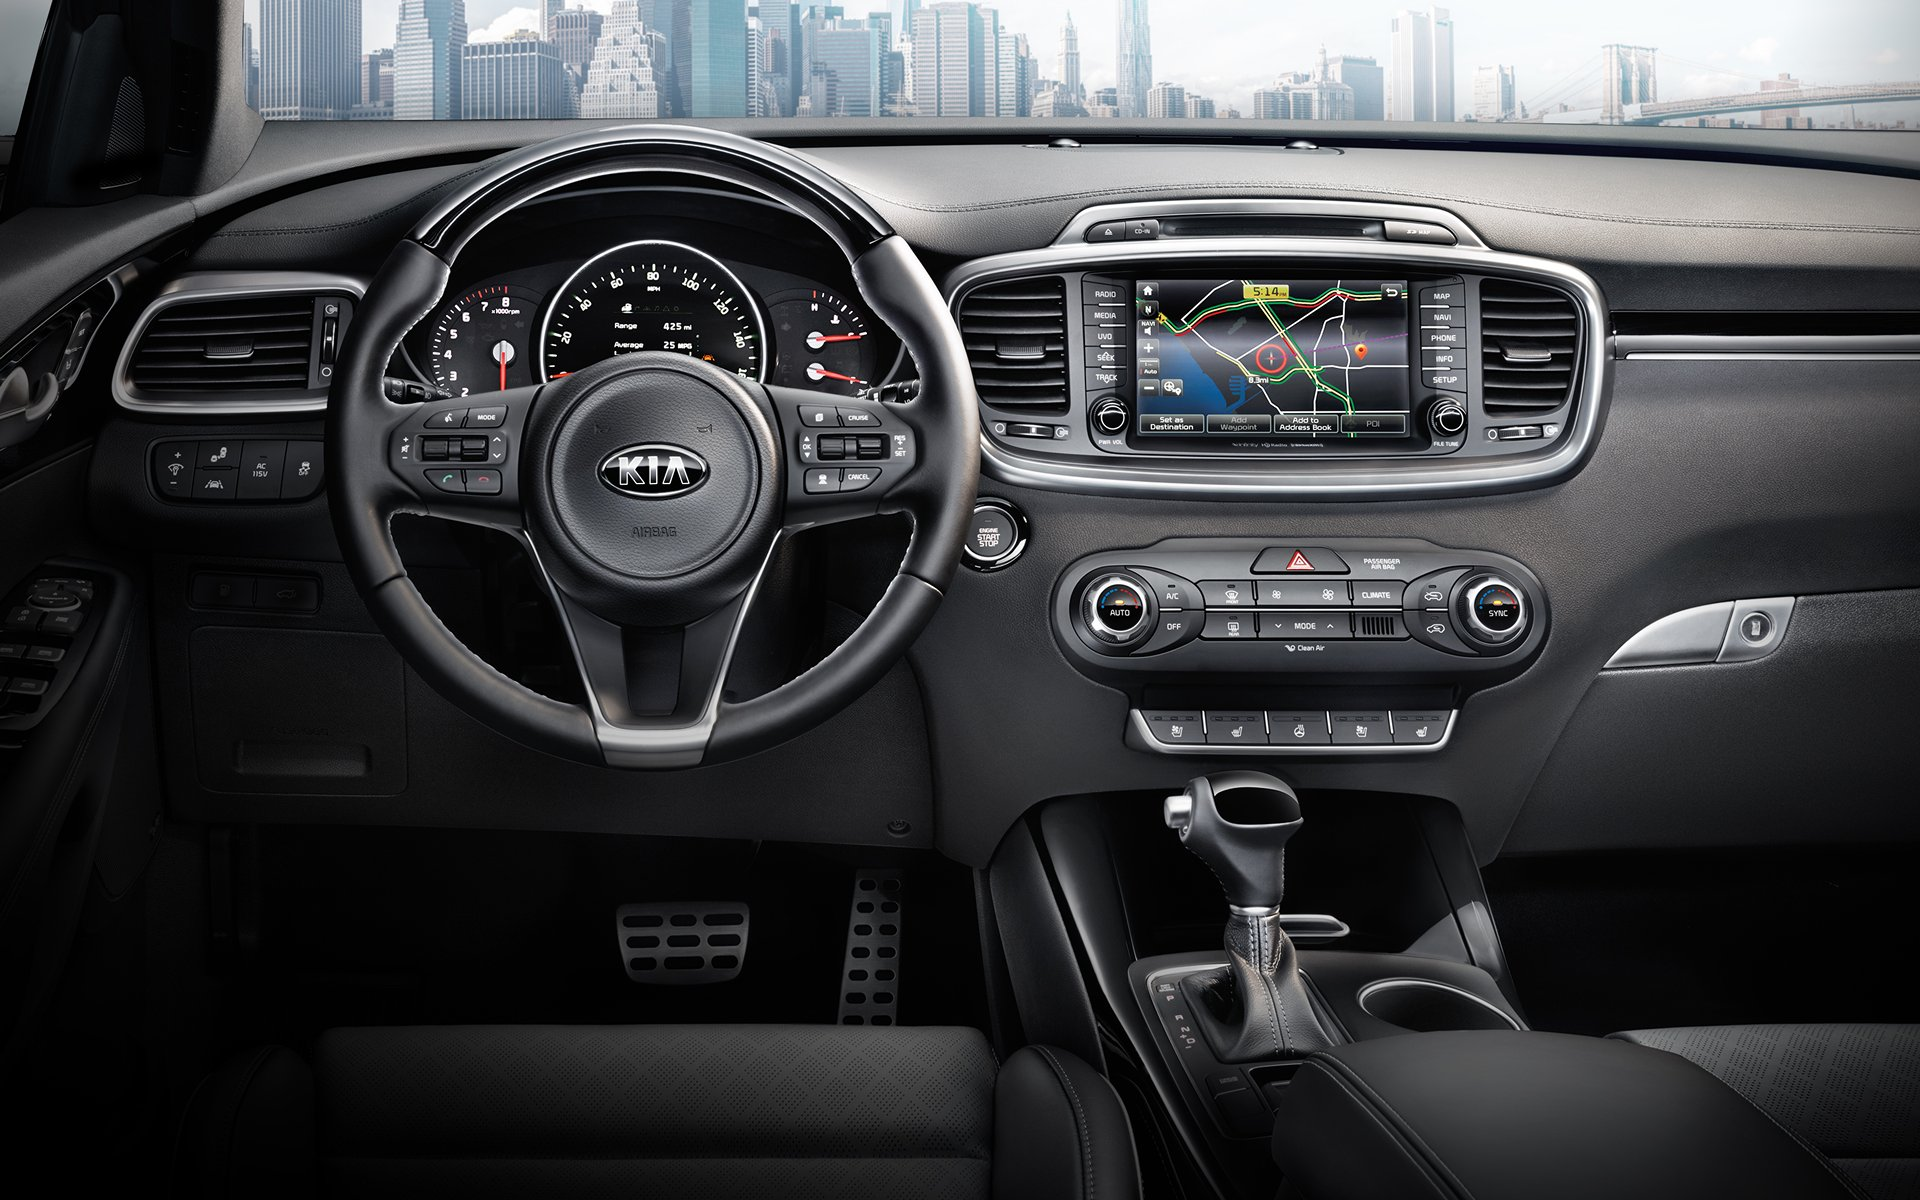 2016 North American Truck Of The Year Nominee Kia Sorento Silverado Center Console Wiring Harness Interior